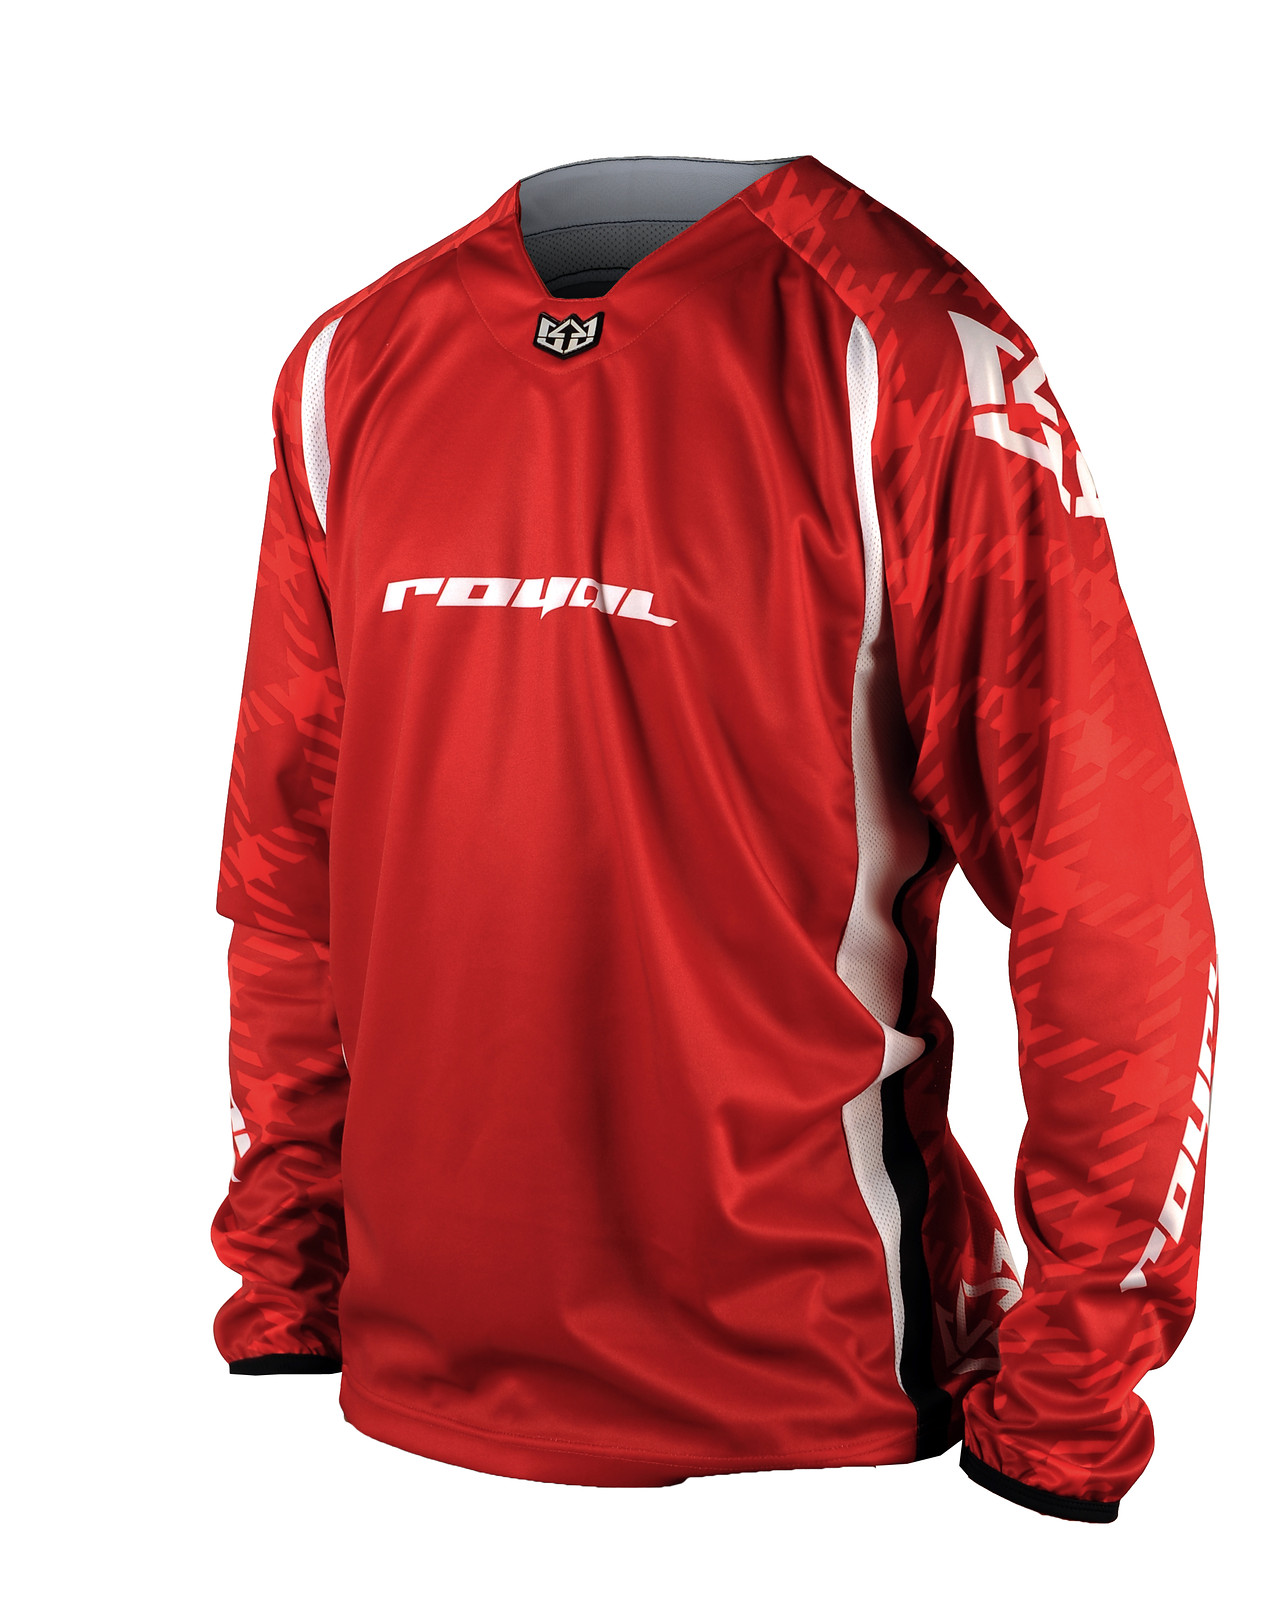 Jersey-SP247-Red